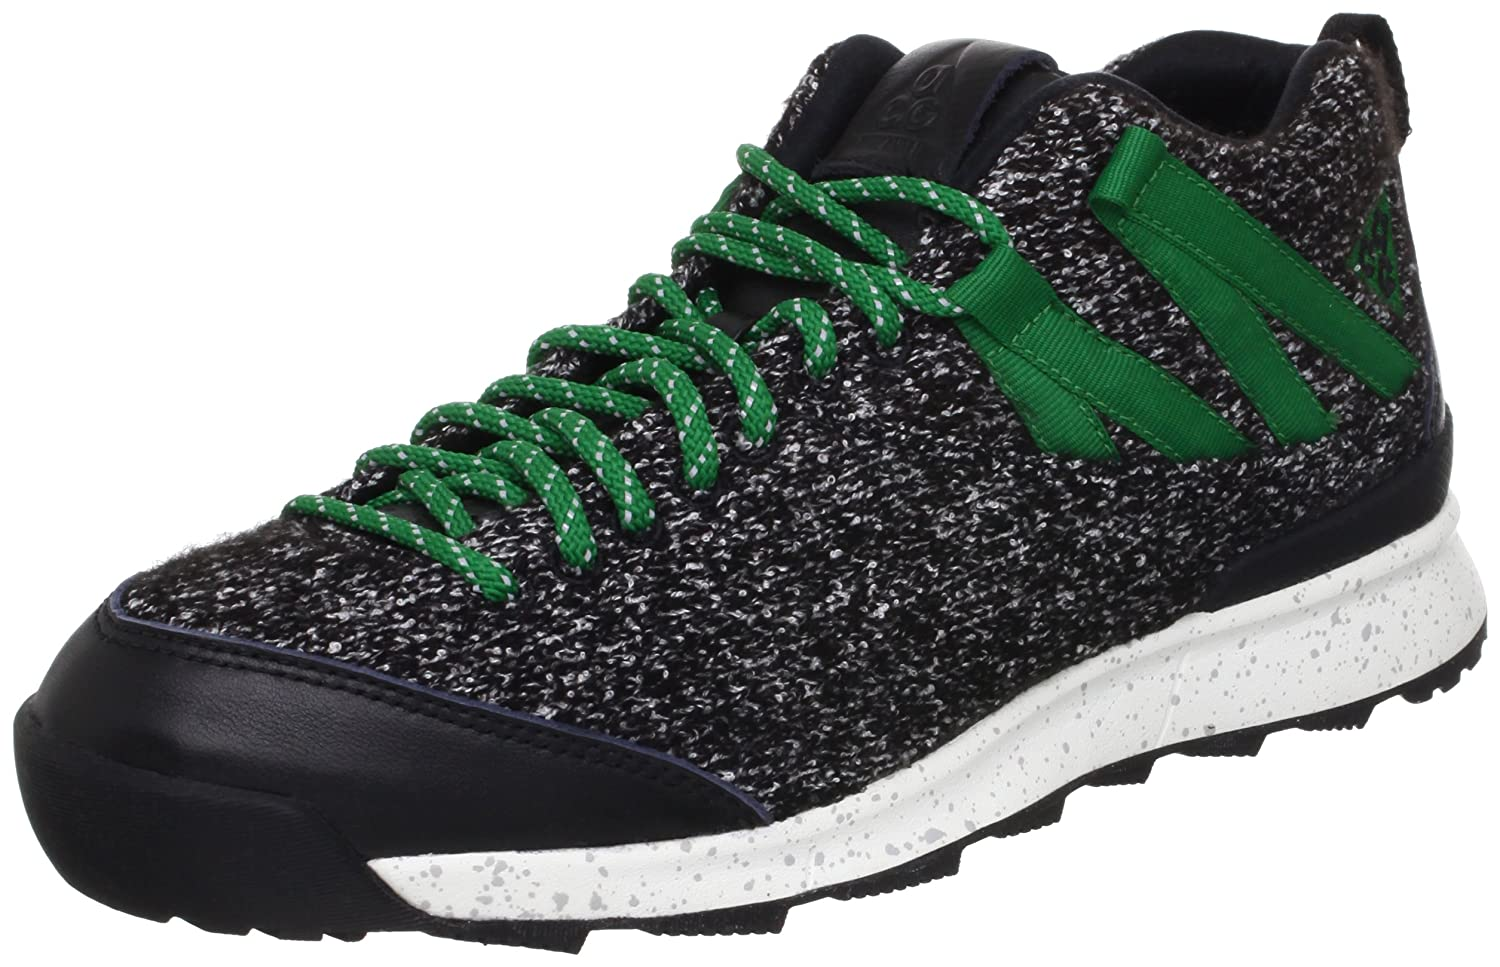 Nike okwahn II 2 NRG ACG mens trail running trainers 577181 003 all  conditions gear sneakers shoes (uk 9 us 10 eu 44)  Amazon.co.uk  Shoes    Bags 46b2dad70c9d